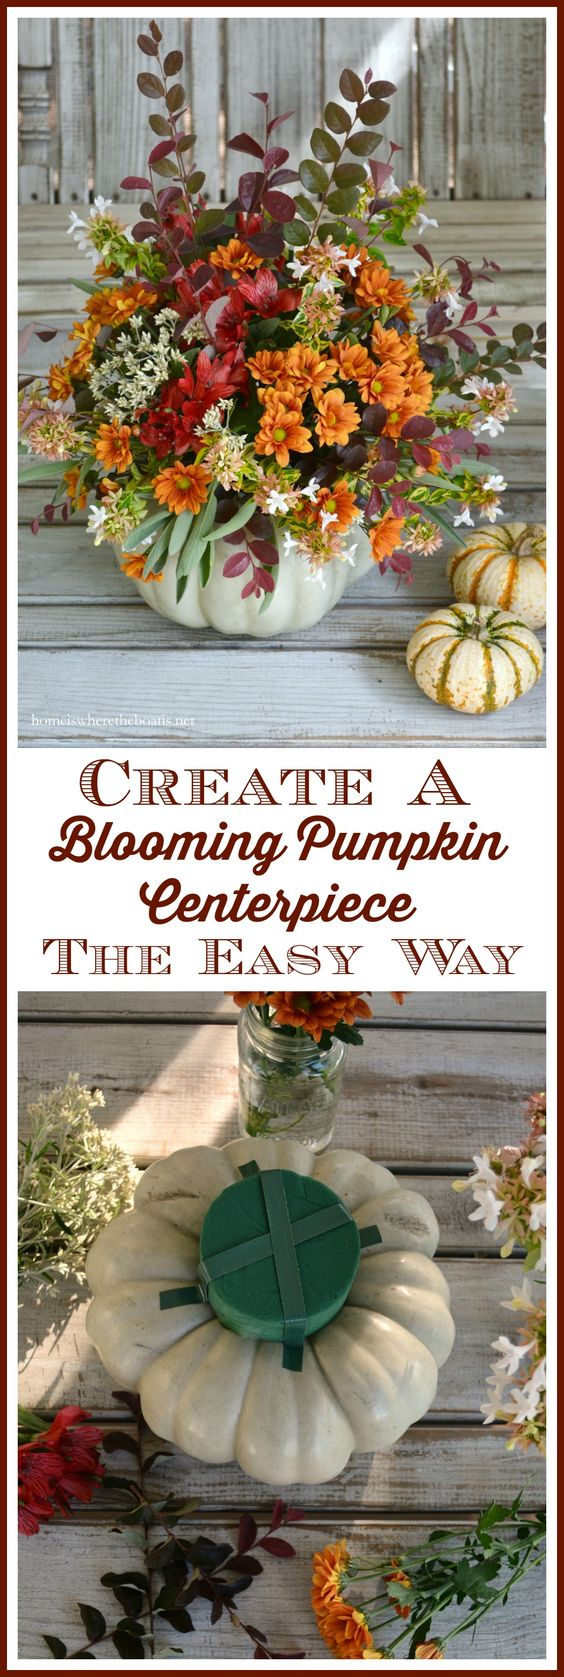 Create a Blooming Pumpkin